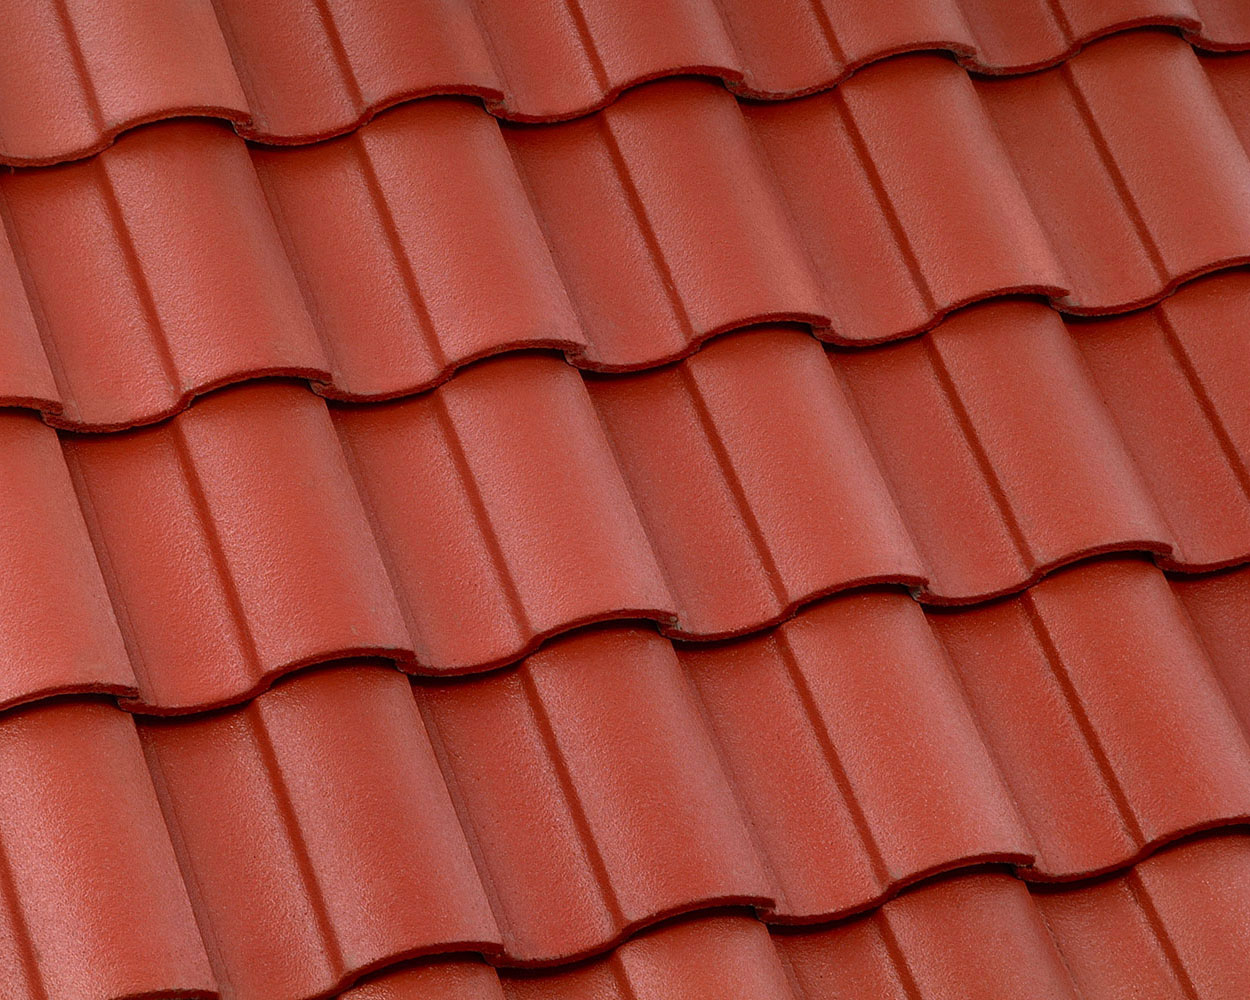 Cayenne tile roof color swatch